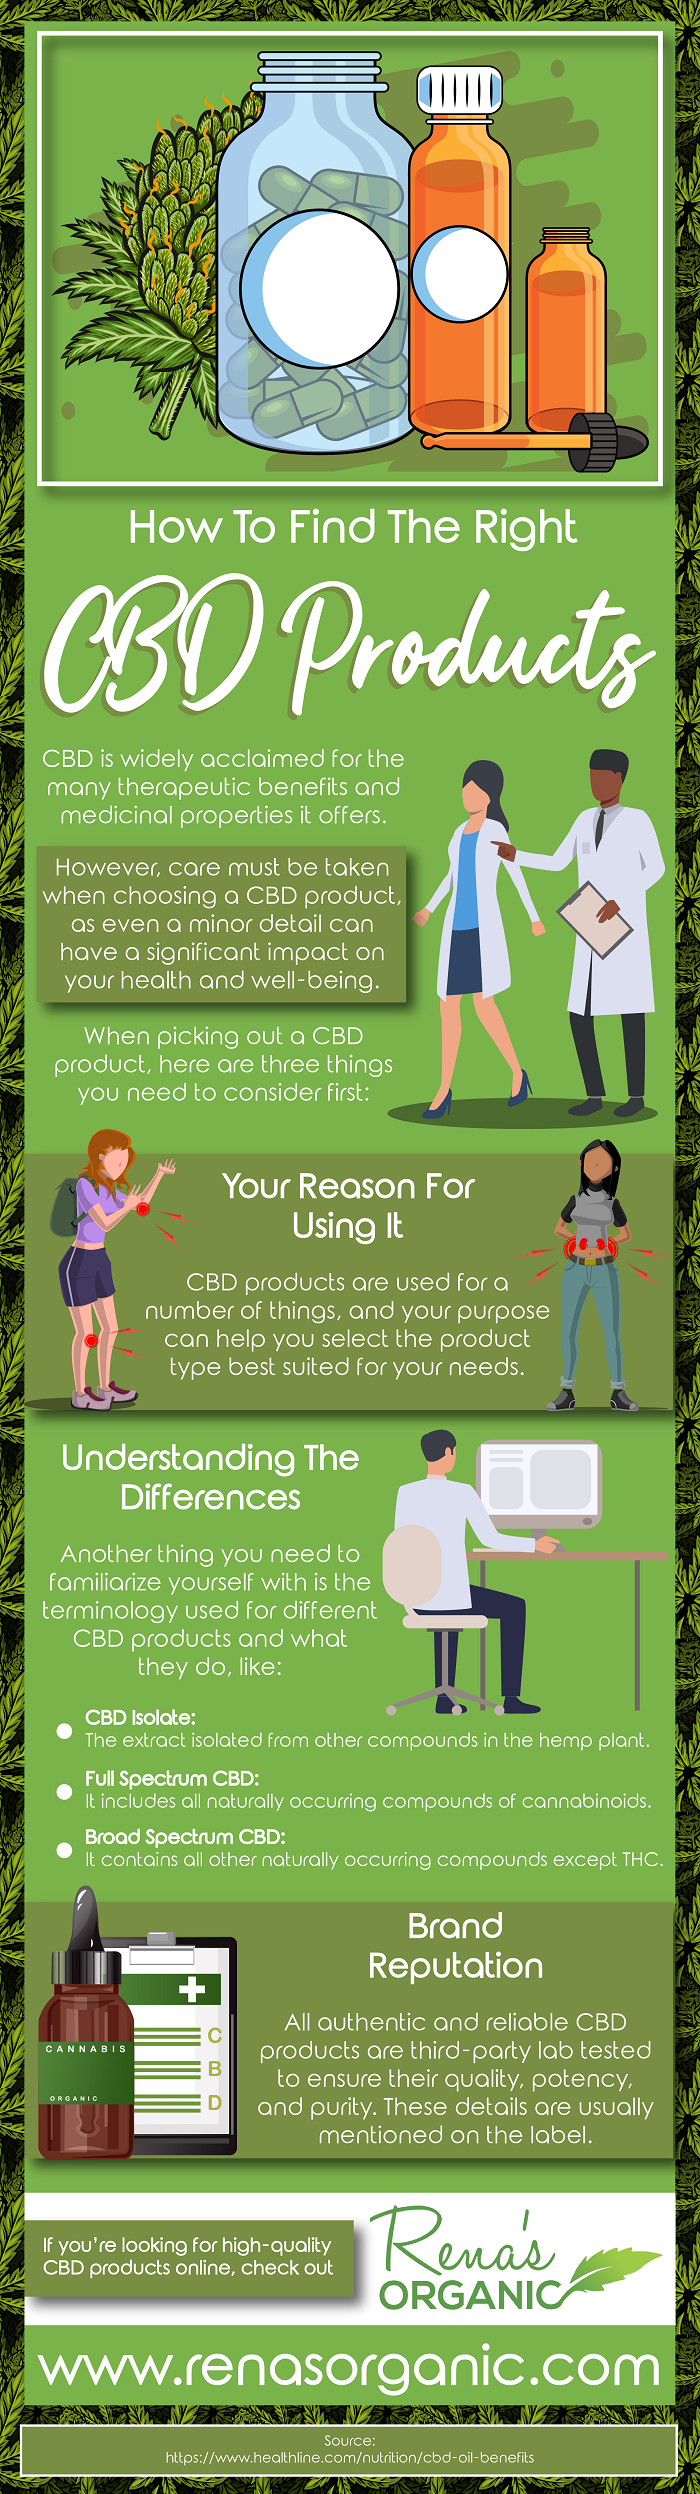 How To Find the Right CBD Products - Infographic